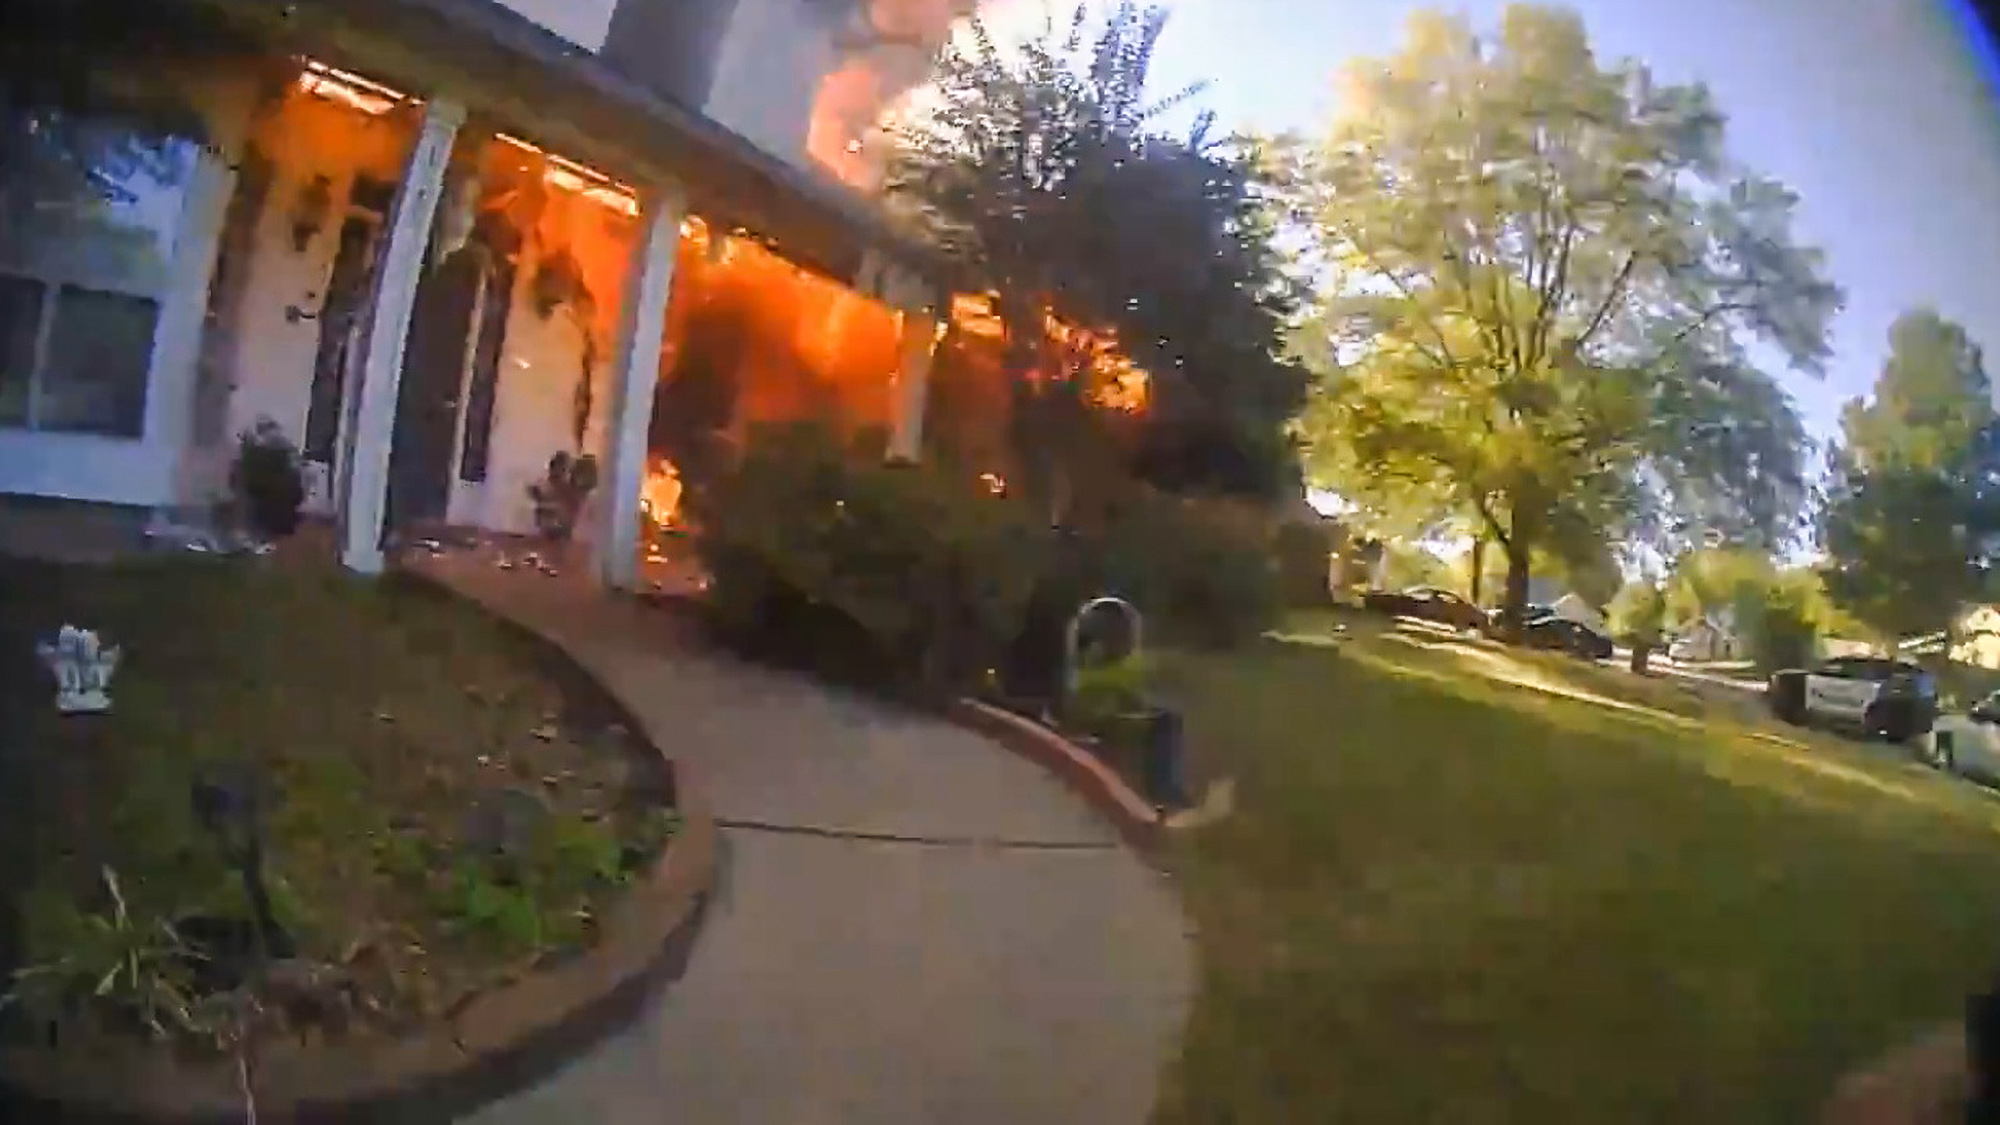 Police Officer Runs into Burning Home to Save Couple and Their Dog